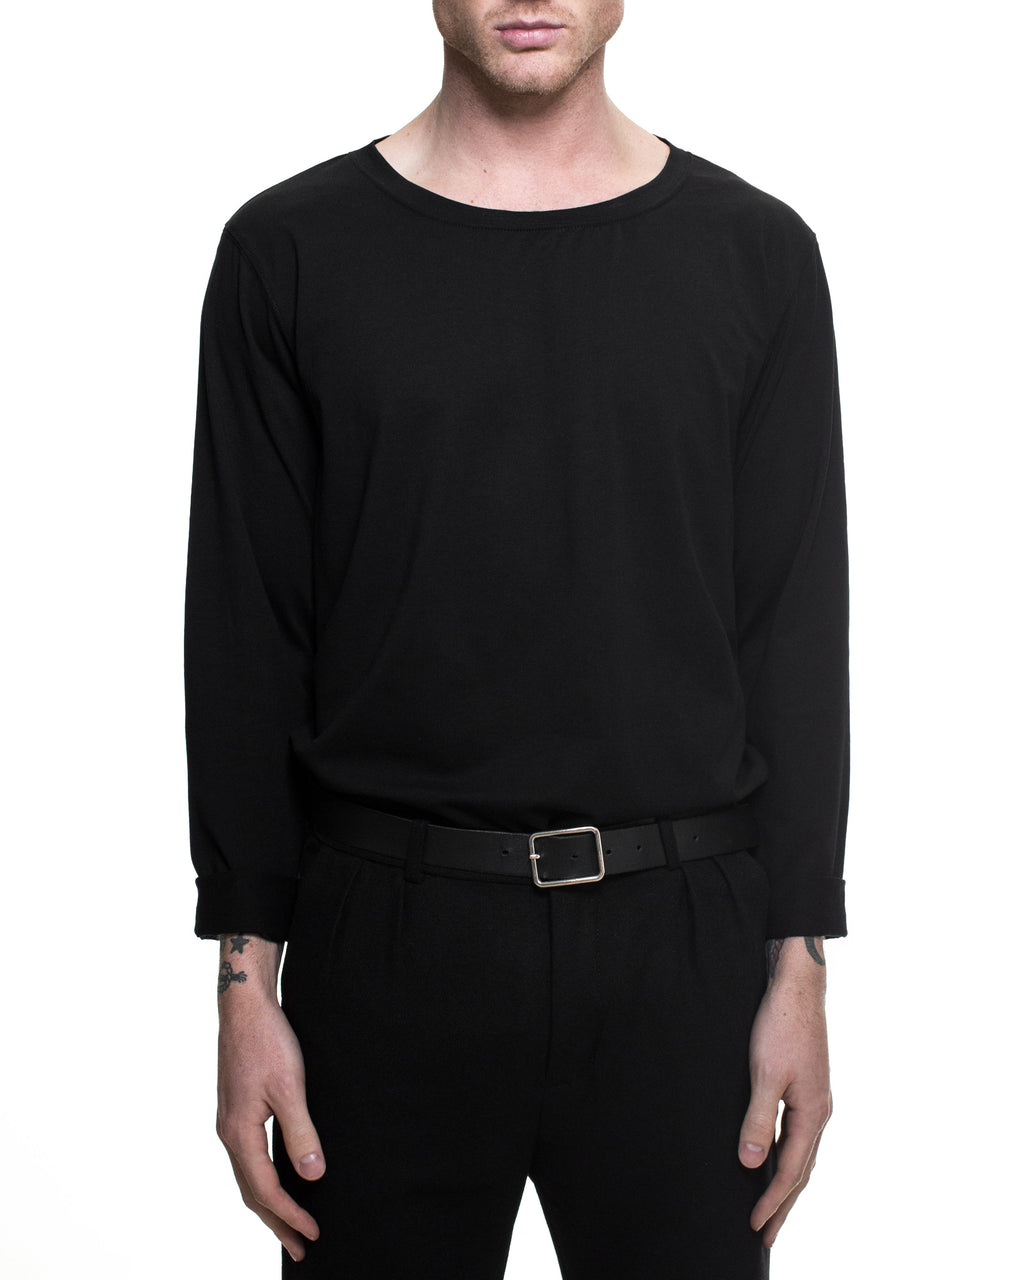 Hook Long Sleeve T-Shirt - Black